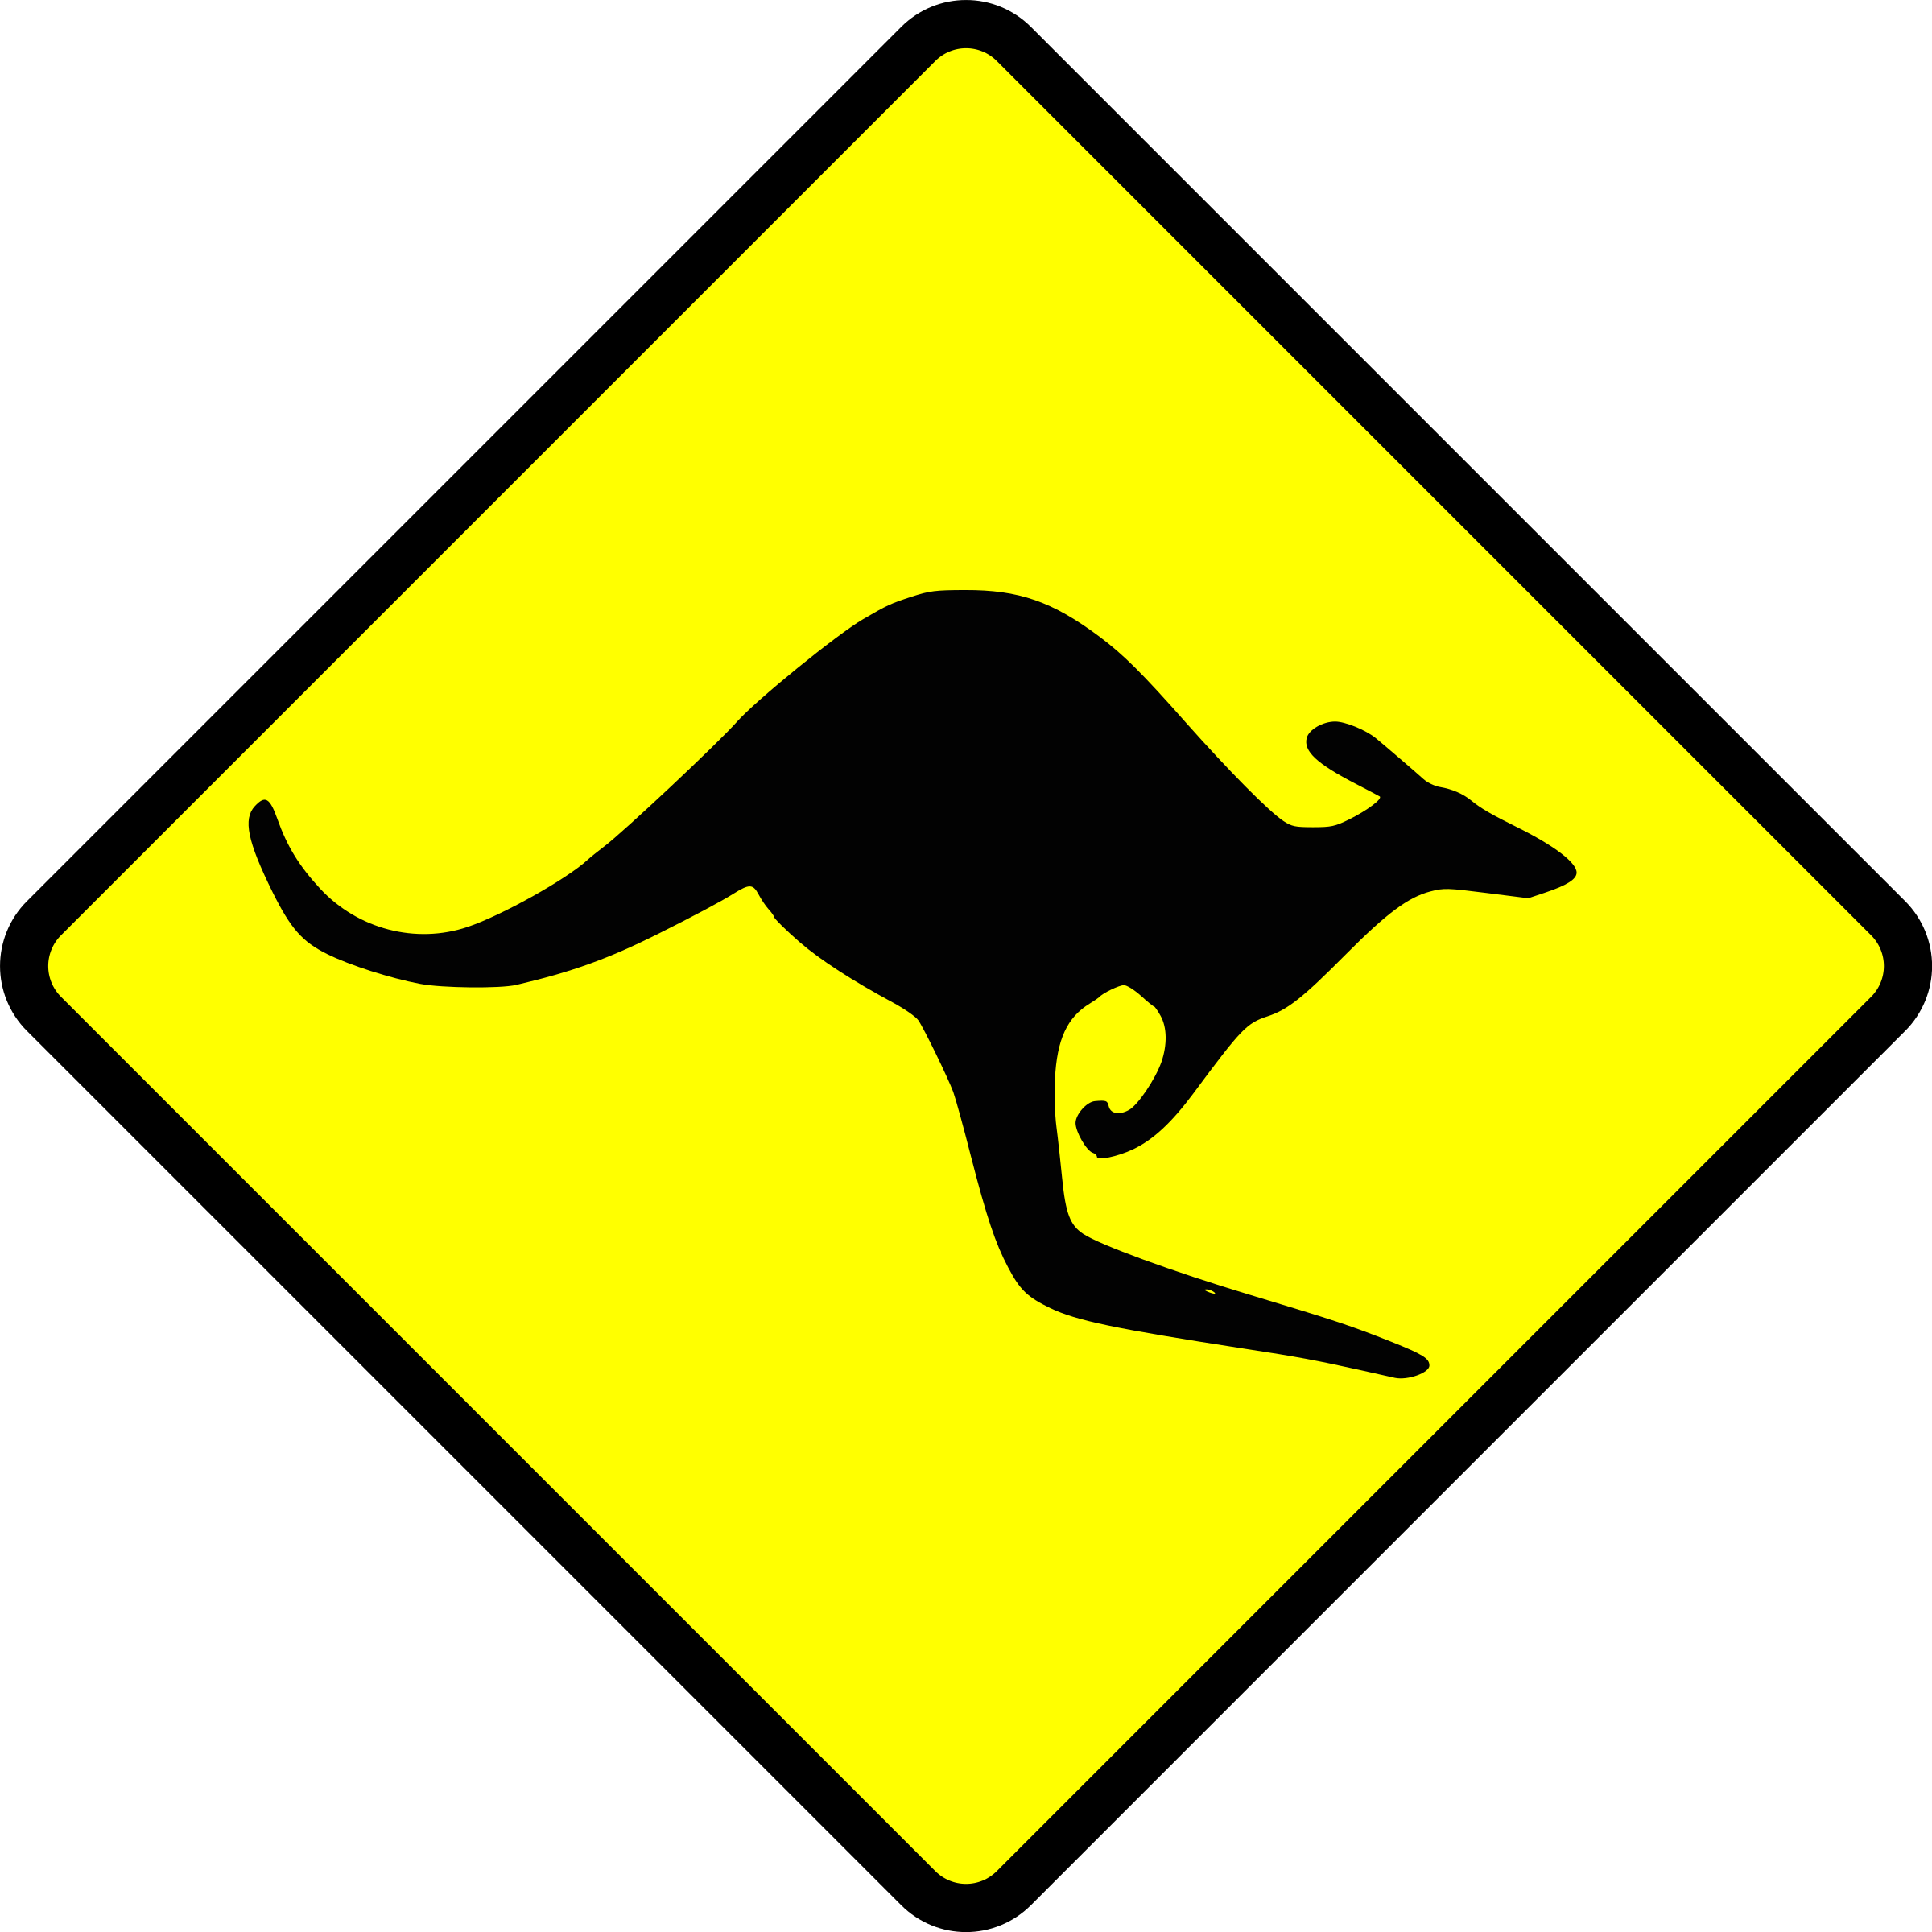 caution-kangaroo by Leomarc